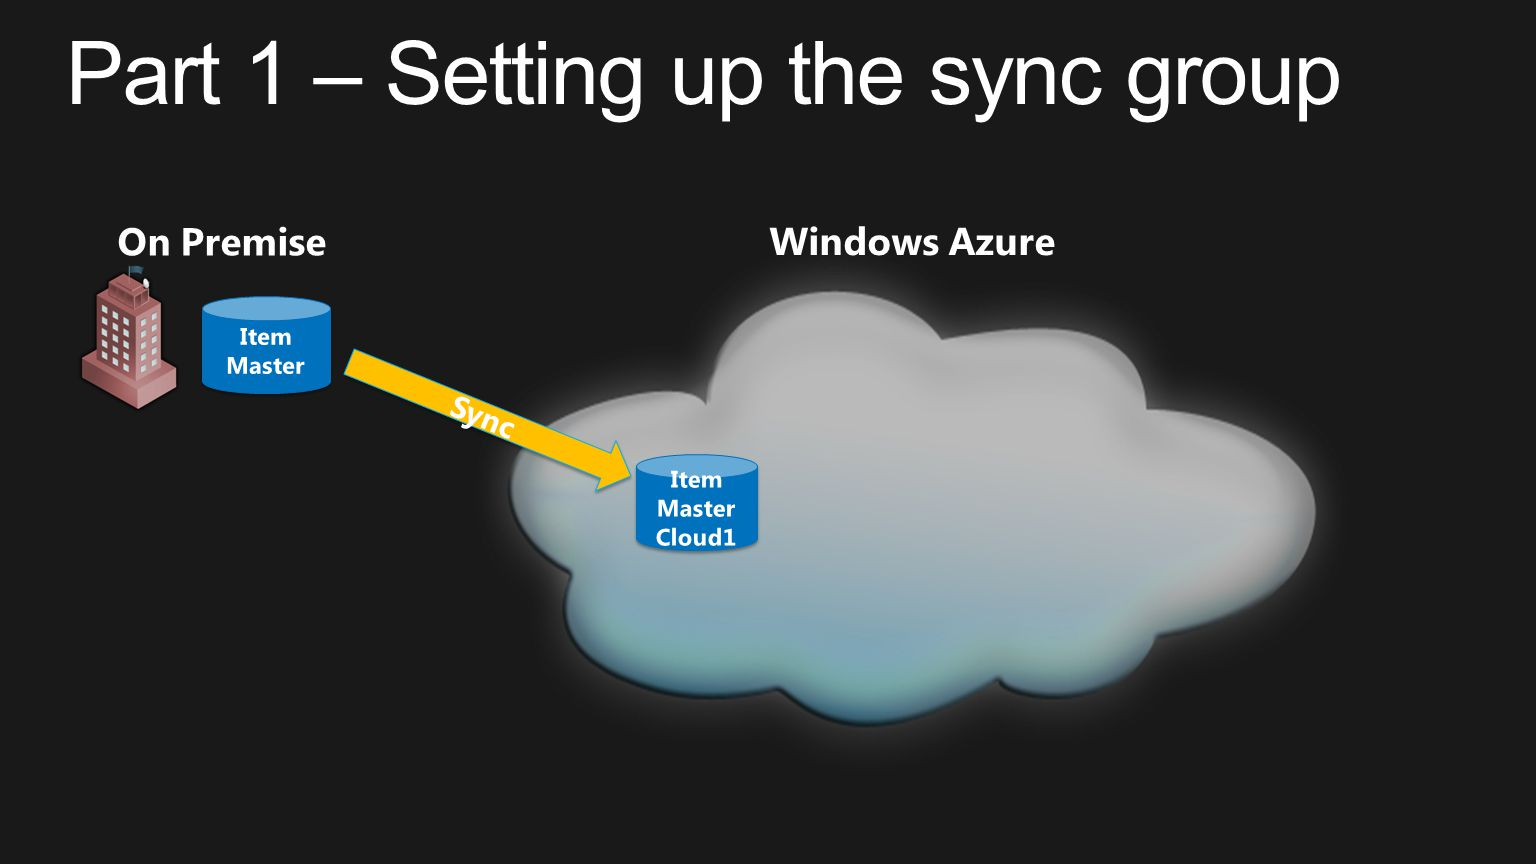 Part 1 – Setting up the sync group